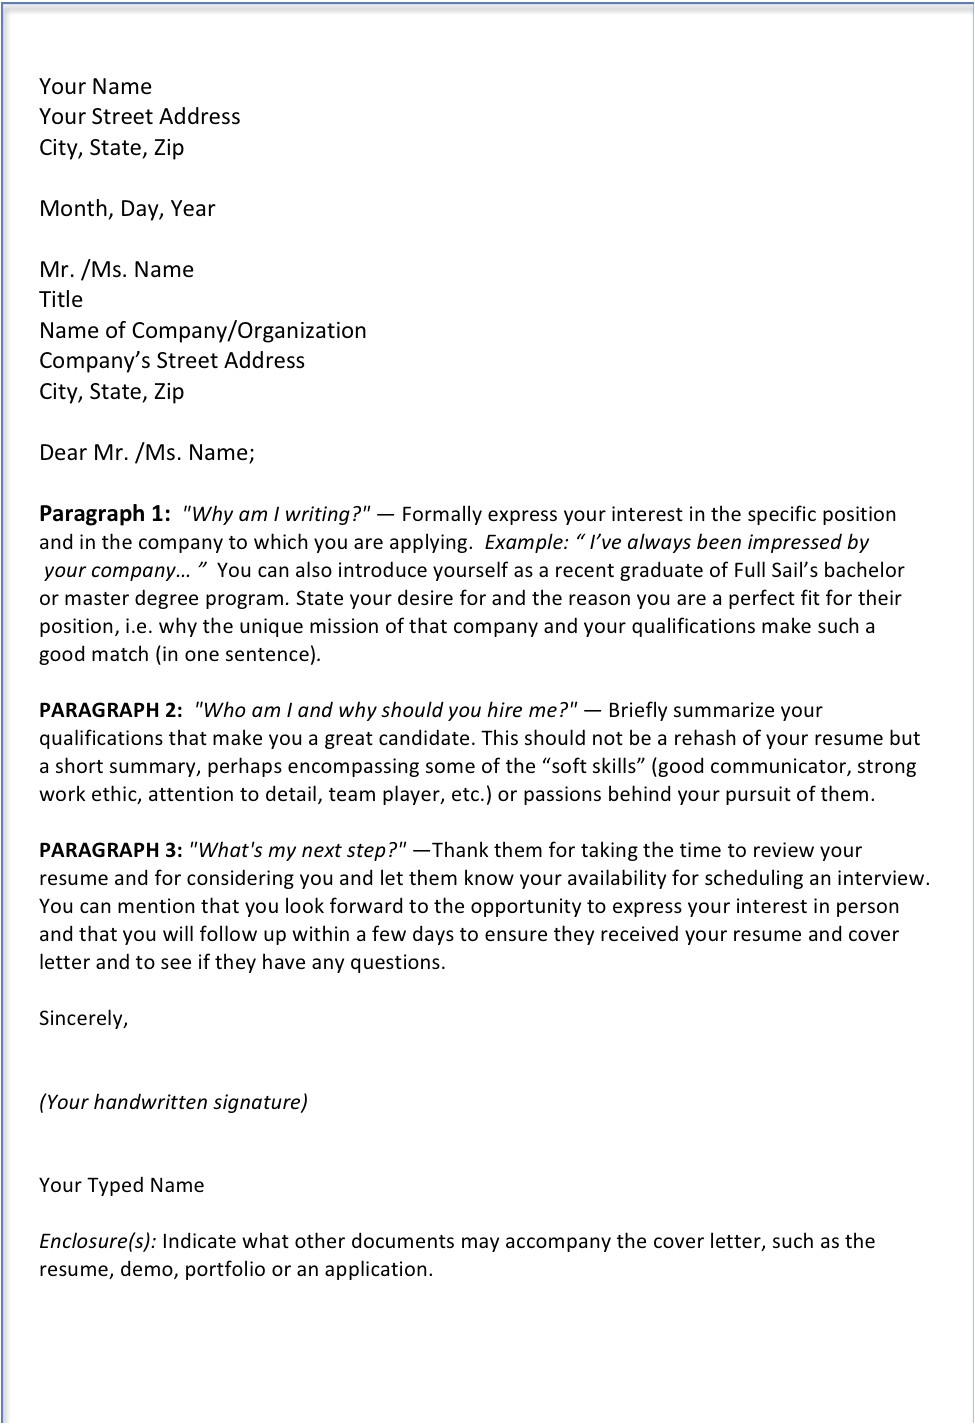 how to write cover letter without using